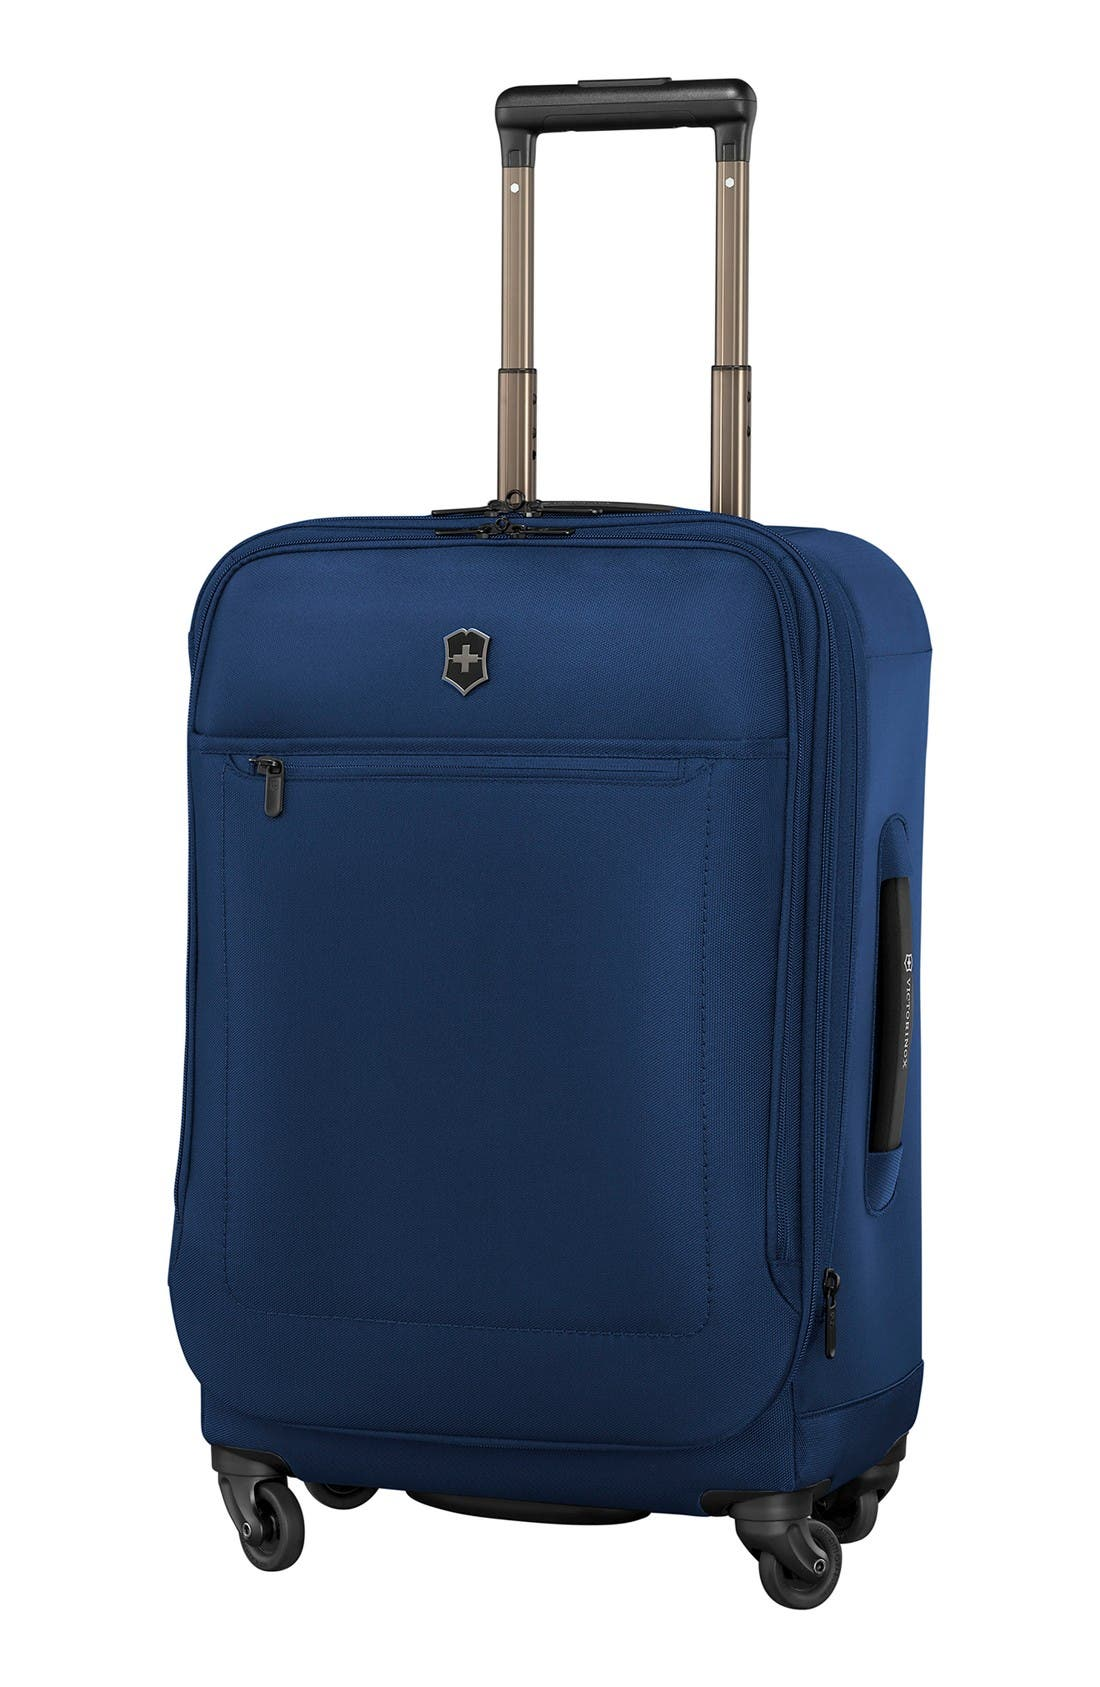 Victorinox Swiss Army® Avolve 3.0 24 Inch Large Carry-On